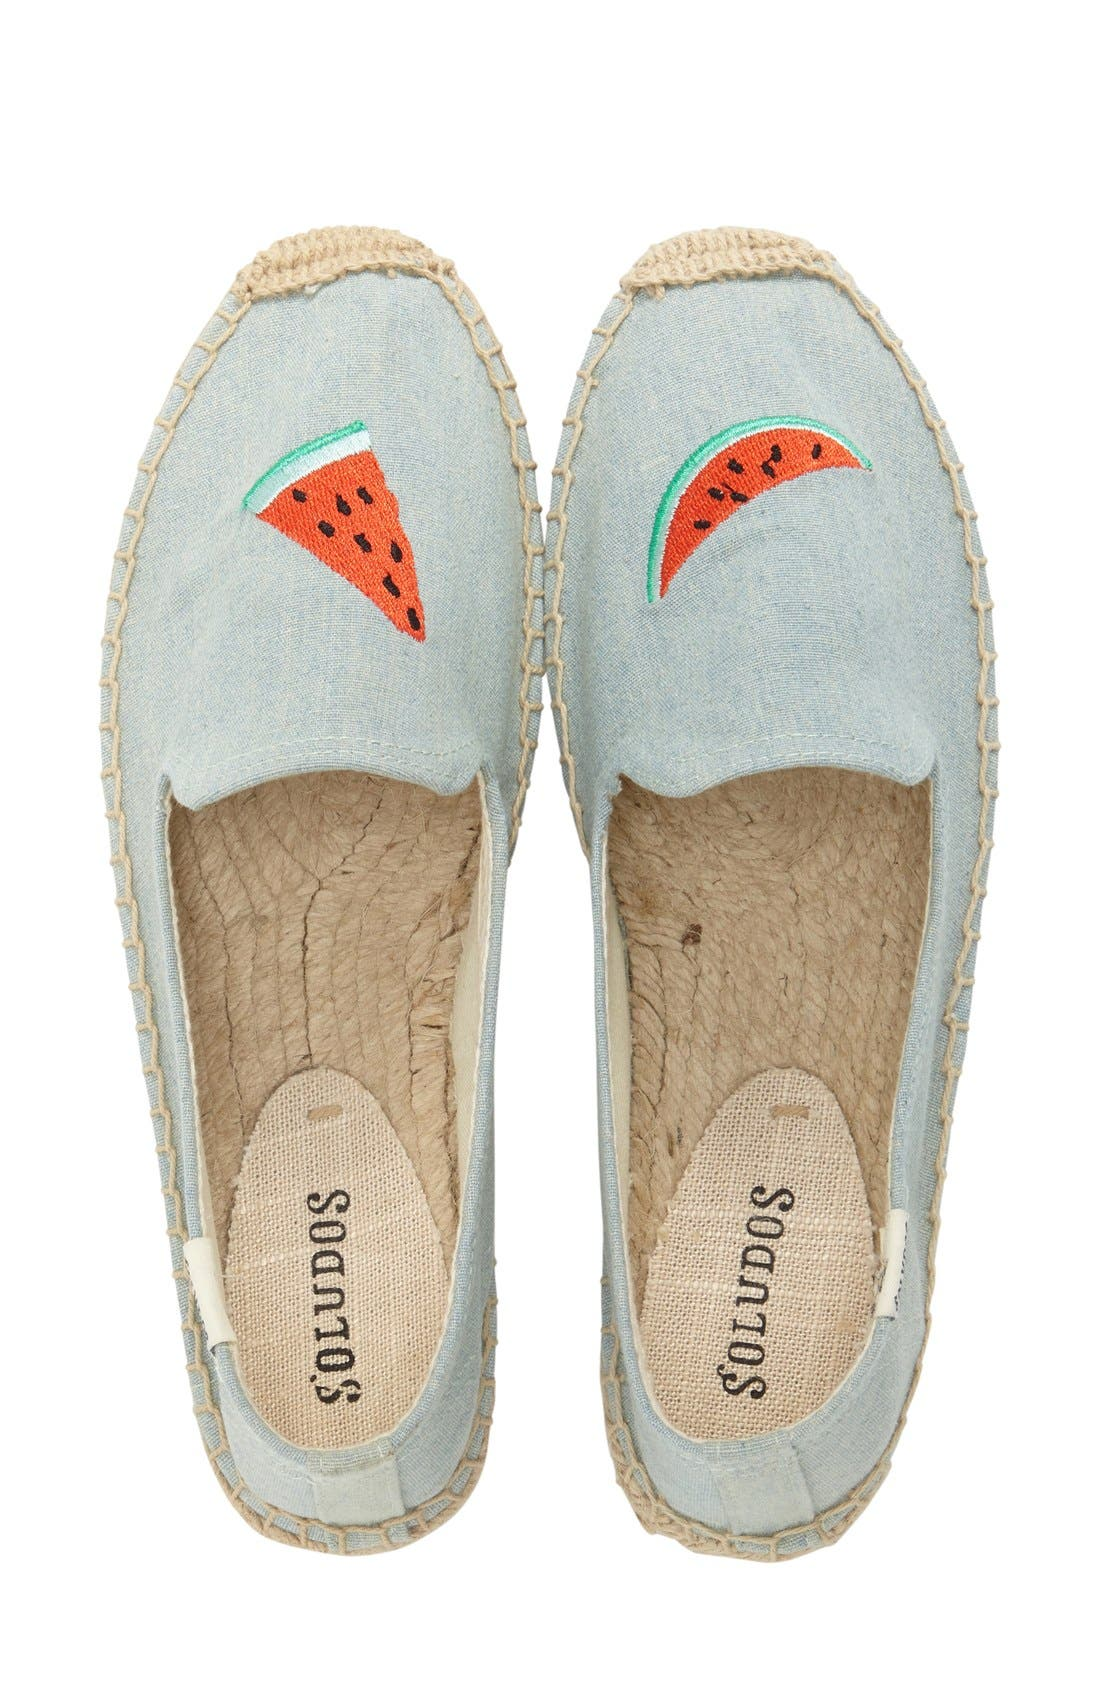 SOLUDOS,                             'Watermelon' Embroidered Flat,                             Alternate thumbnail 4, color,                             420